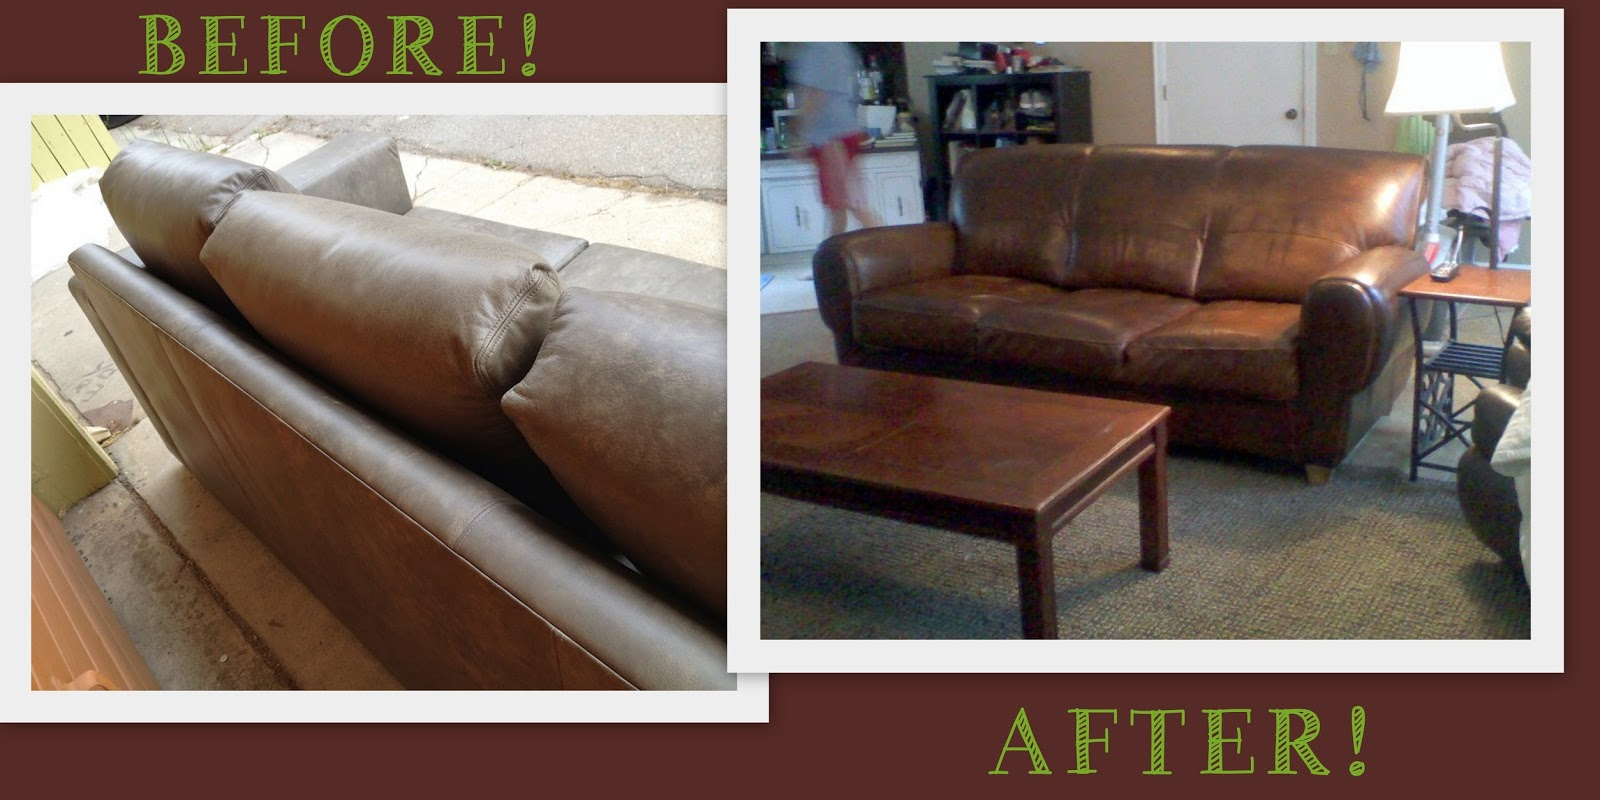 How To Get Rid Of Oil Stain On Leather Sofa - Leather Sofa Ideas